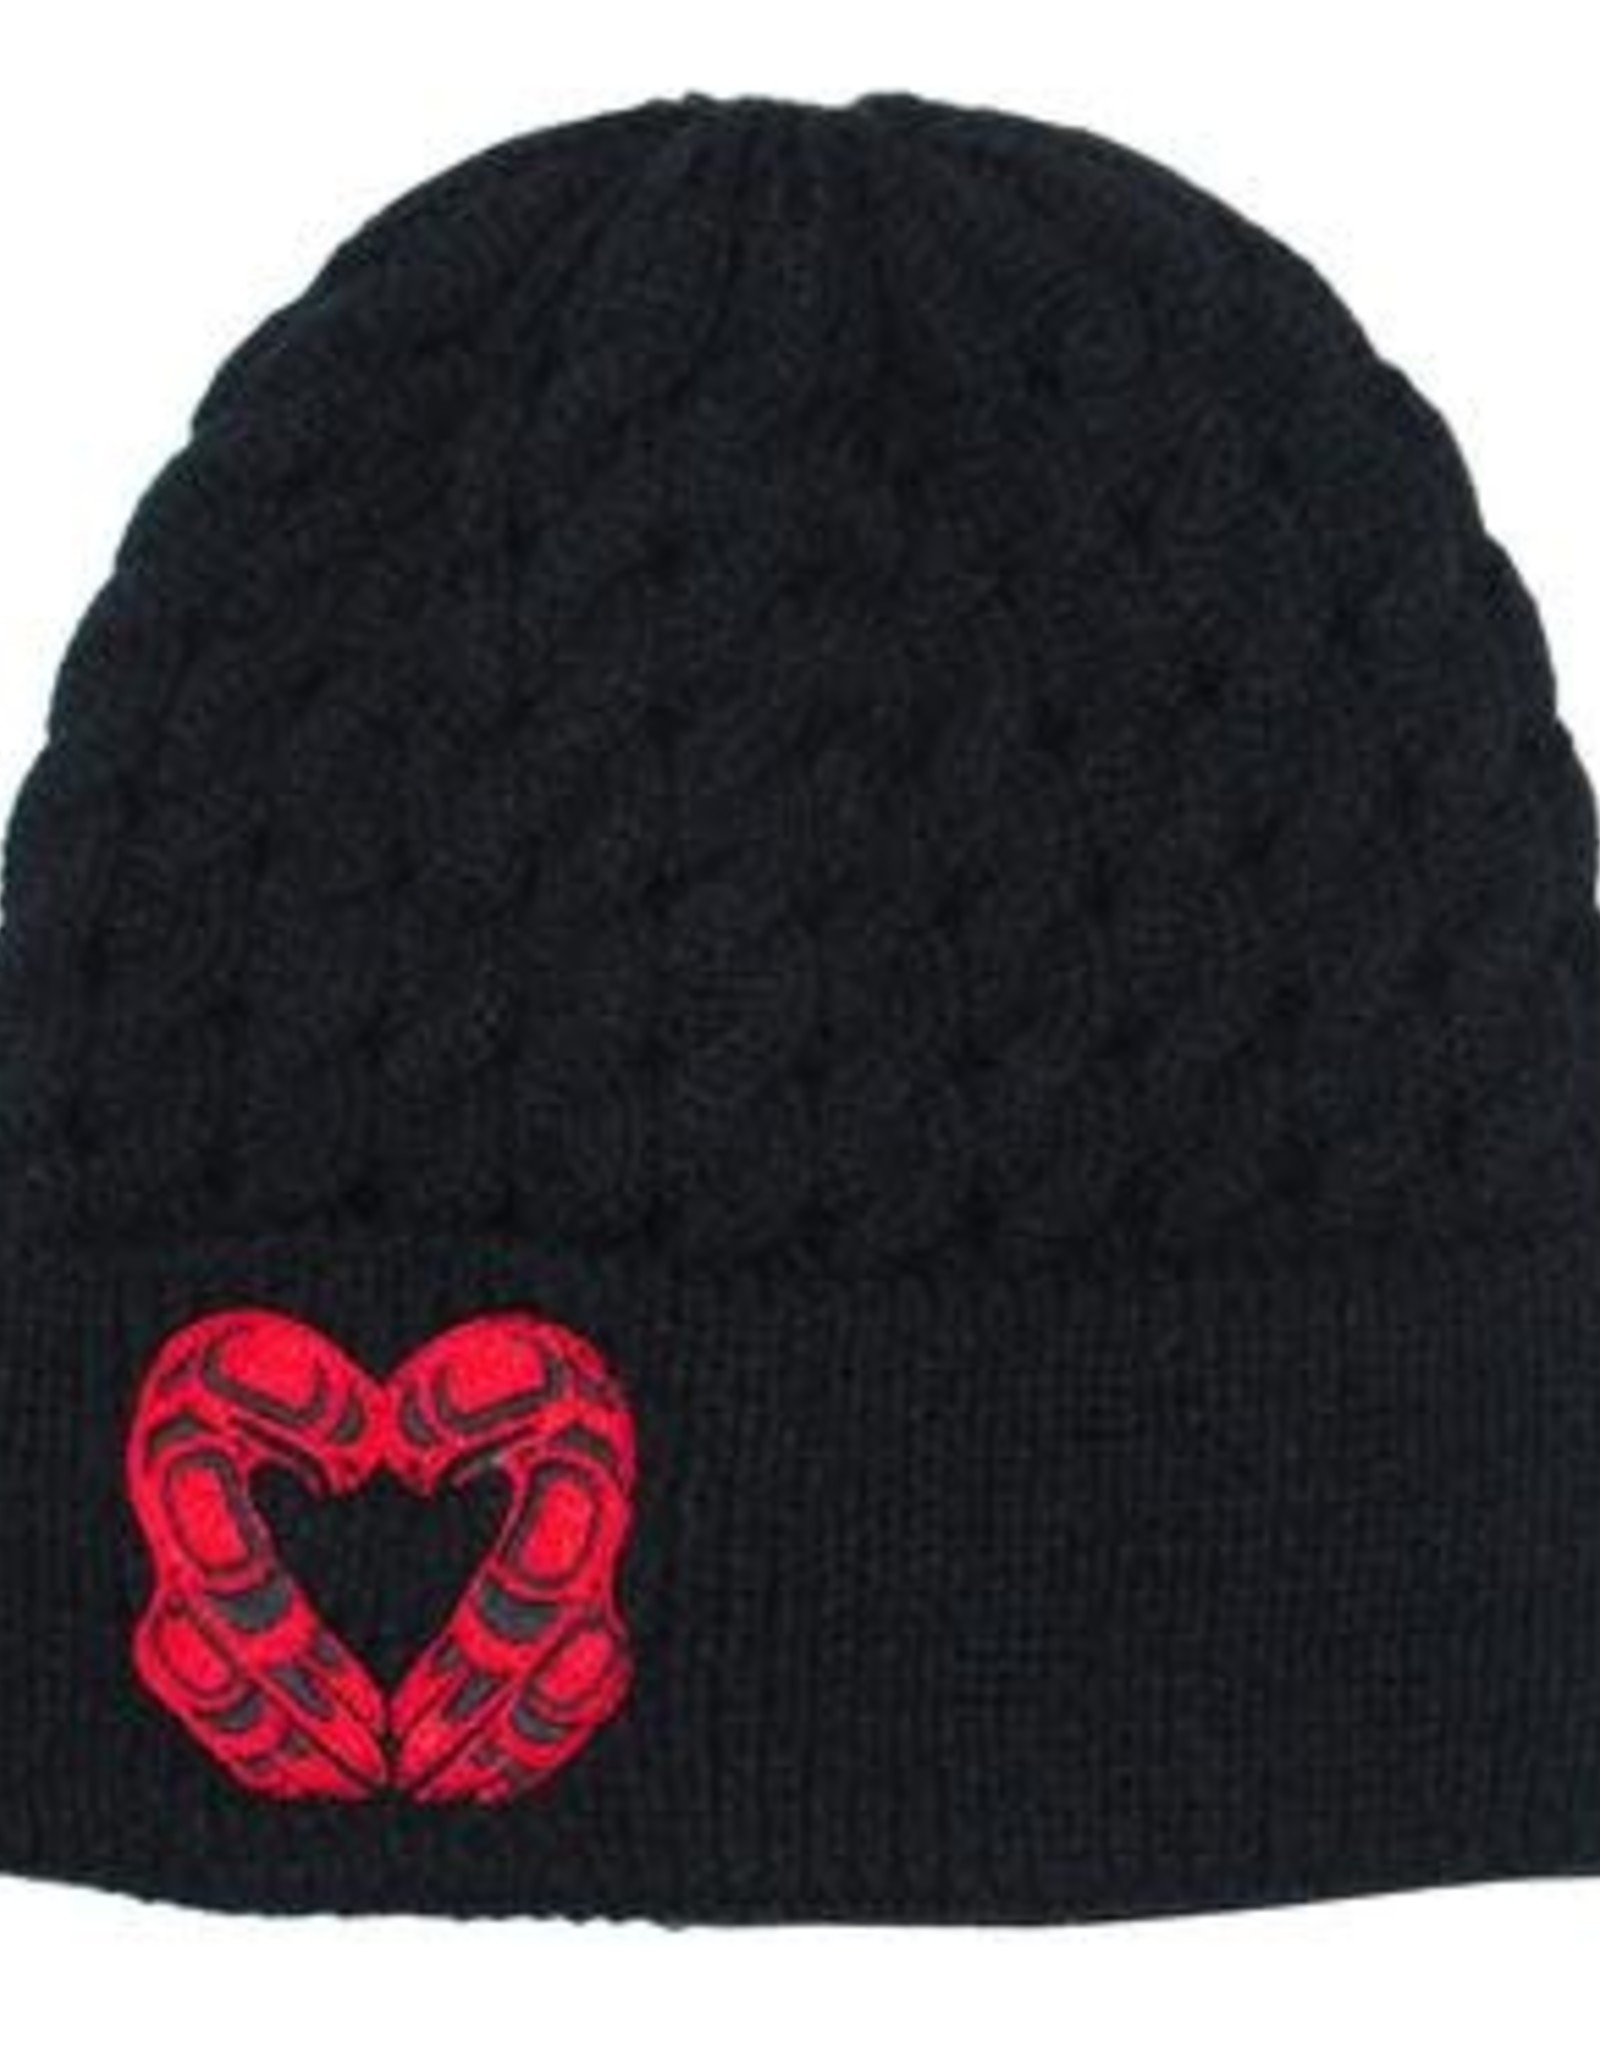 Embroidered Knitted Hat- Eagle Heart by Roy Henry Vickers